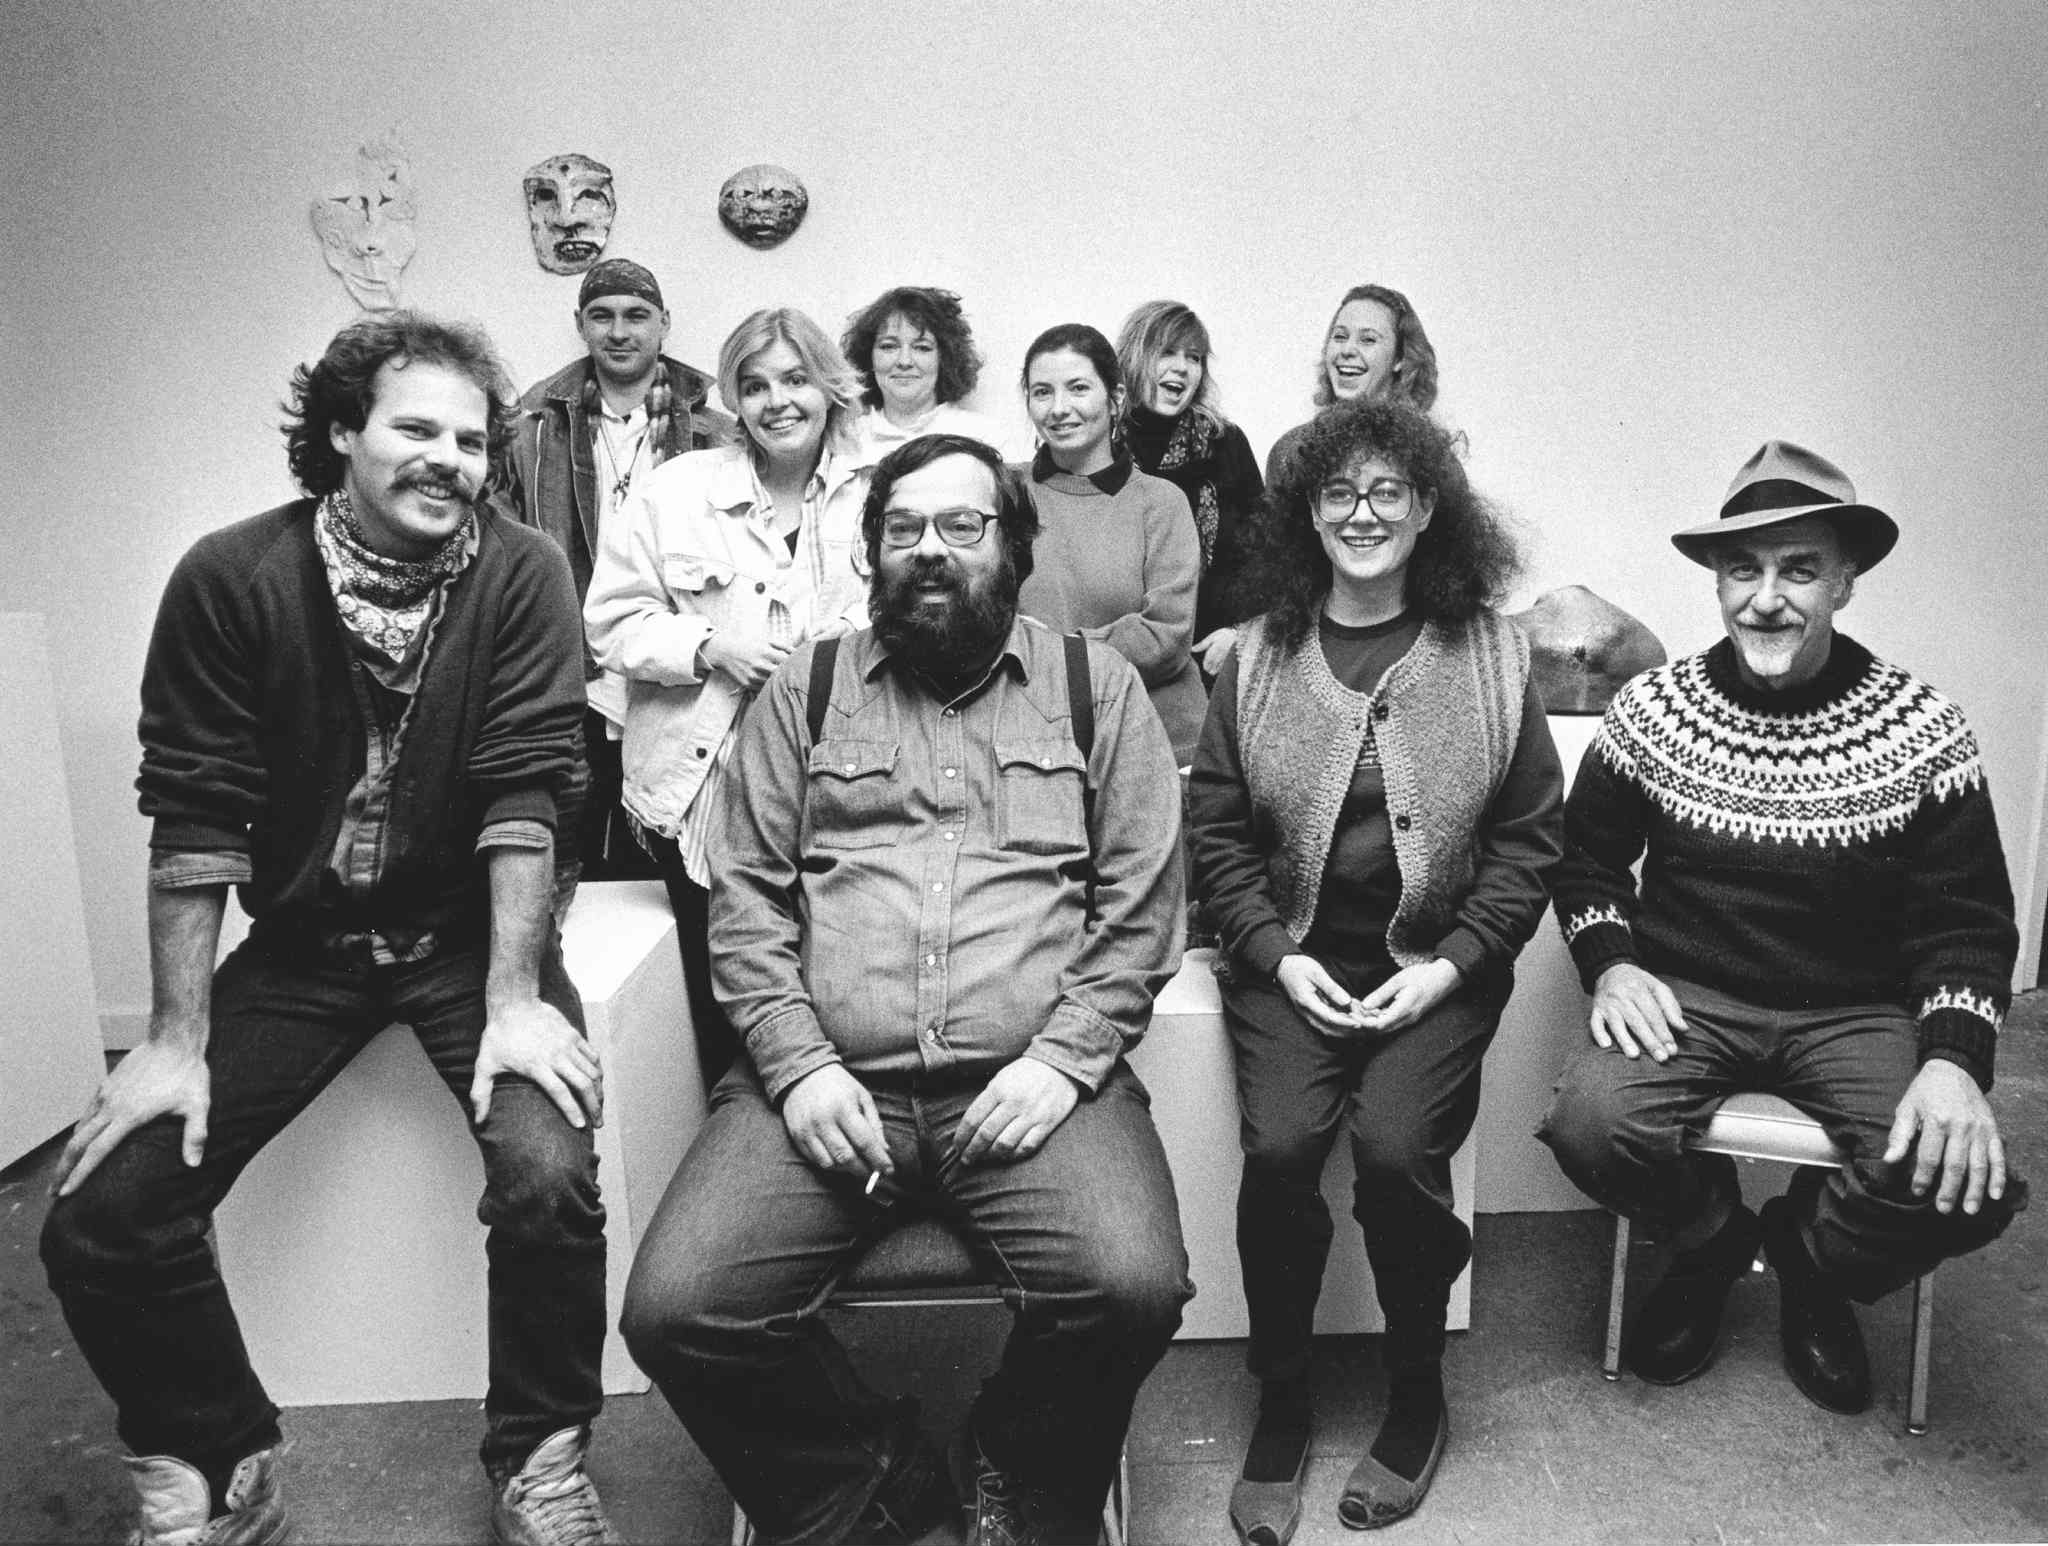 Thom Sparling (from left, front row), Mitch Podolak, Ava Kobrinsky and Harry Paine with WECC staff and volunteers in 1988. (Glenn Olsen / Winnipeg Free Press)